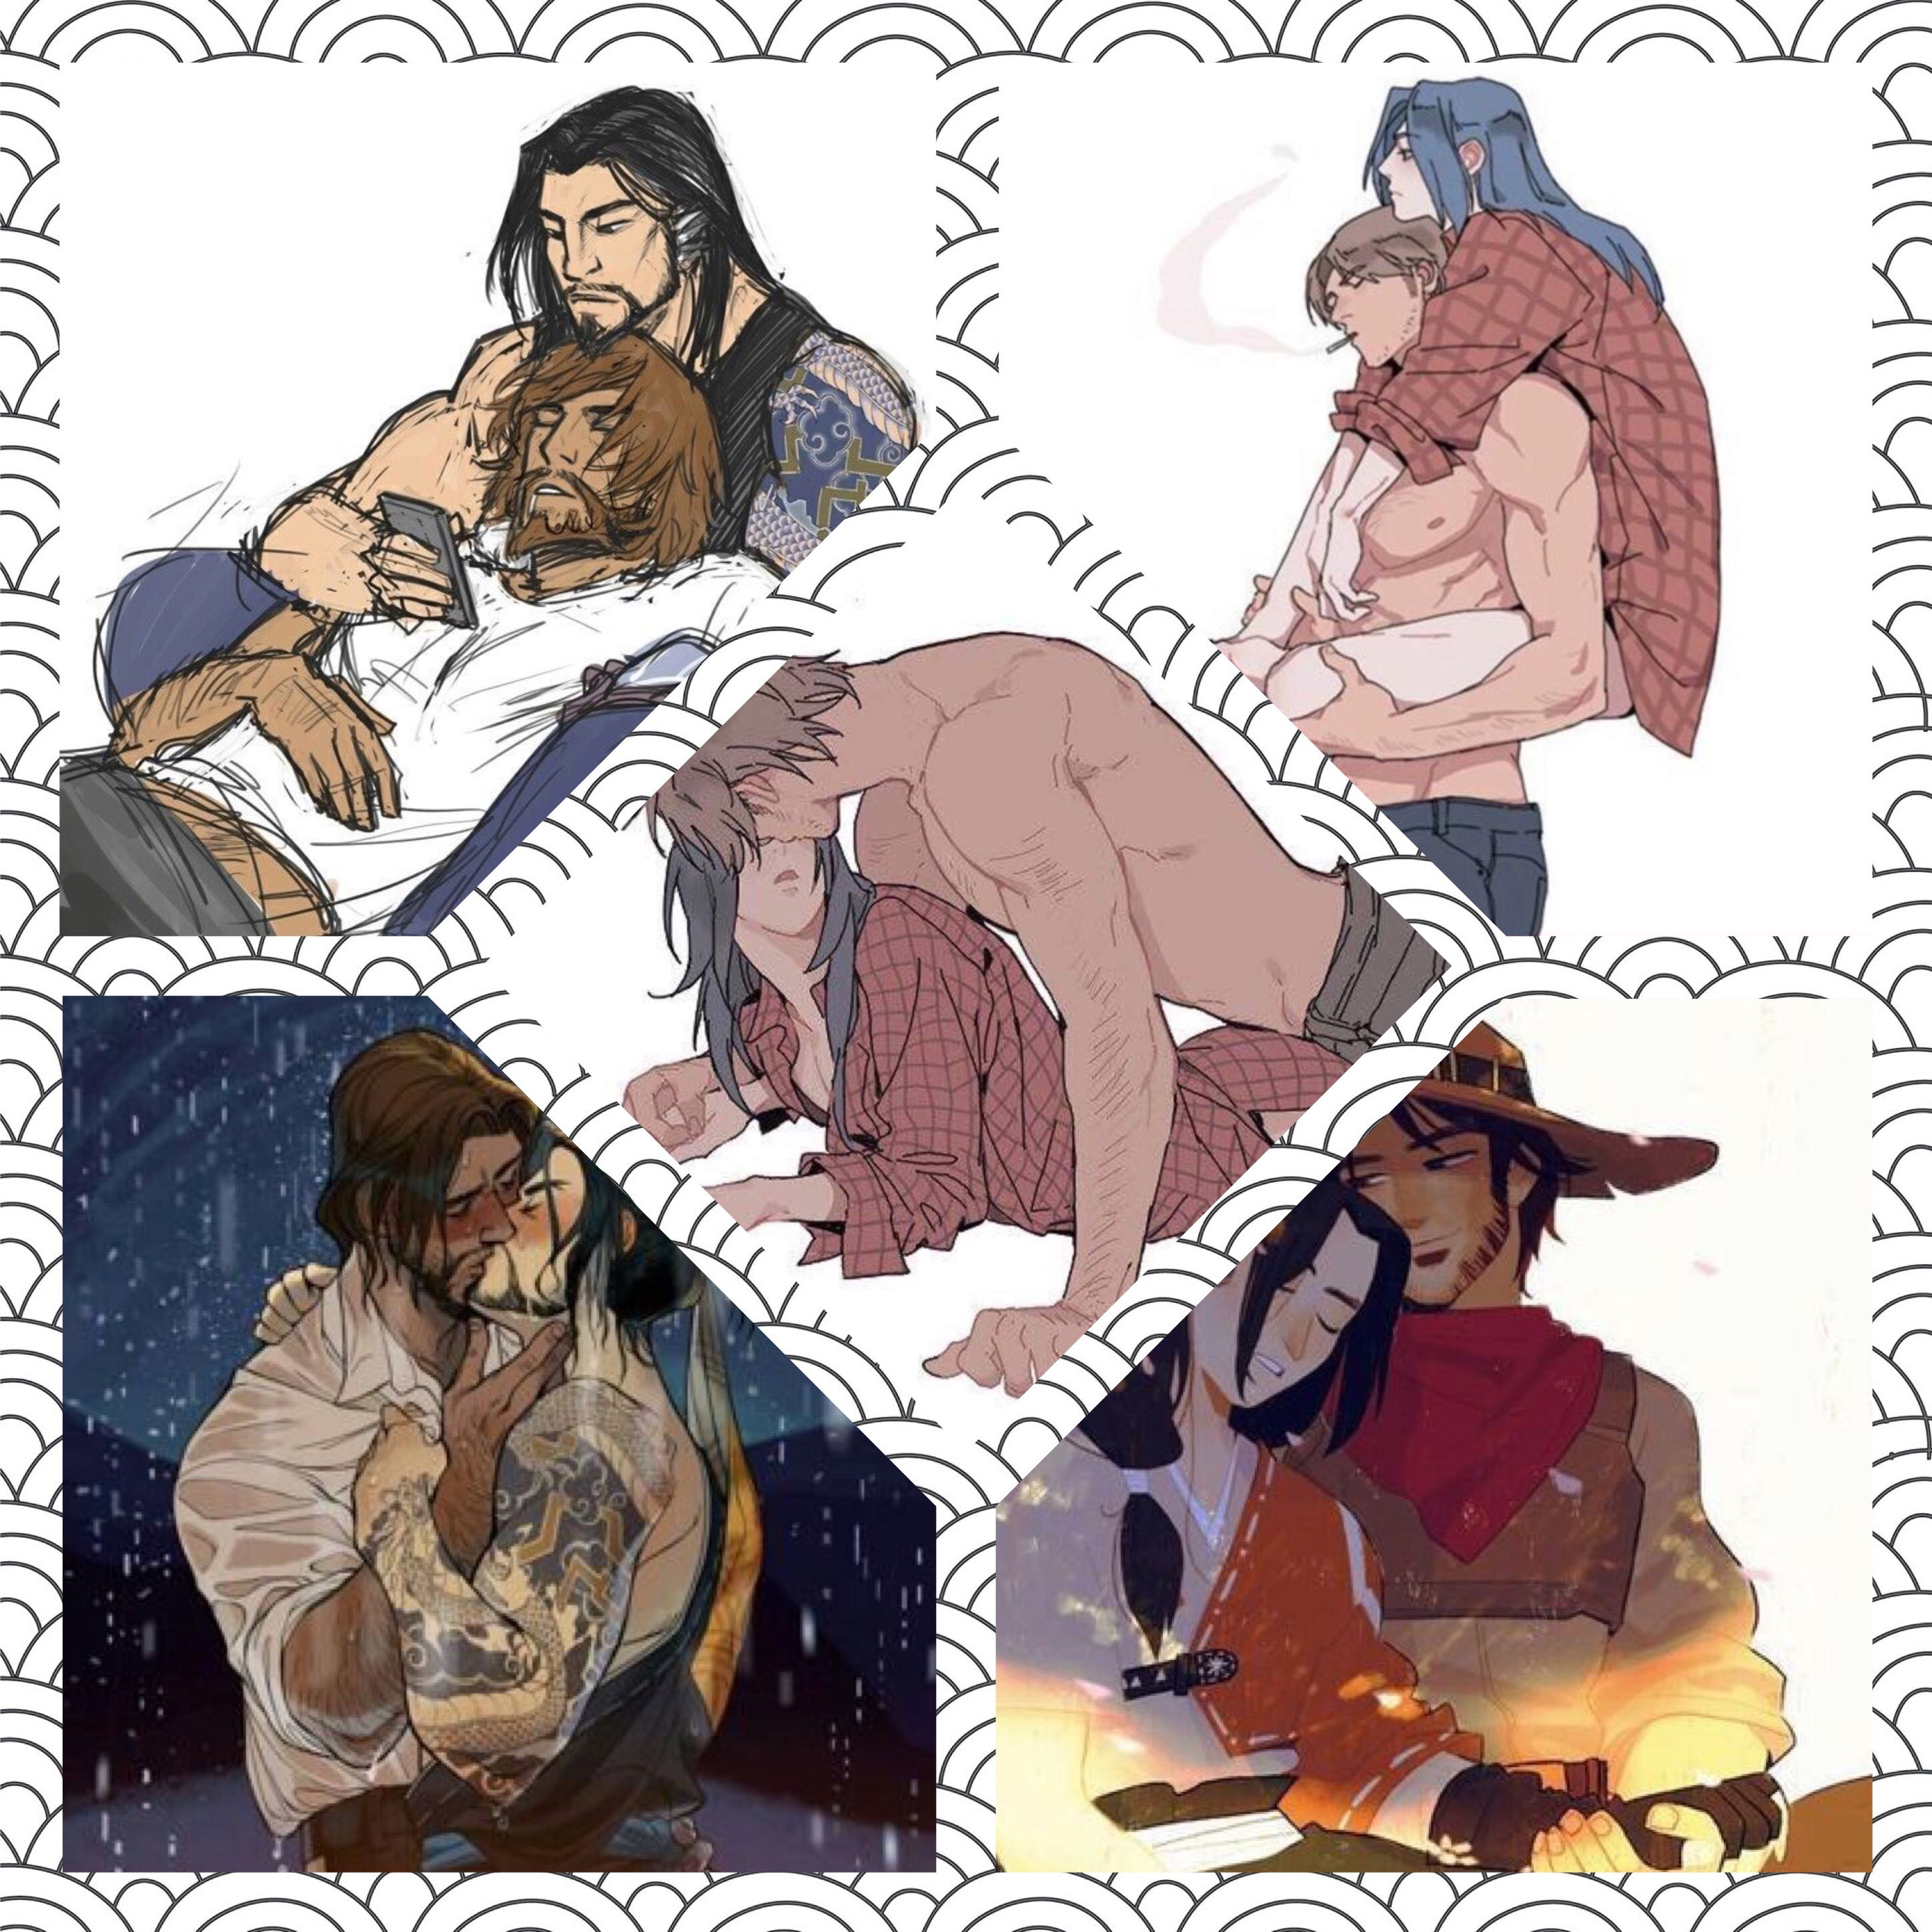 Mccree X Hanzo Overwatch Smut - Year of Clean Water